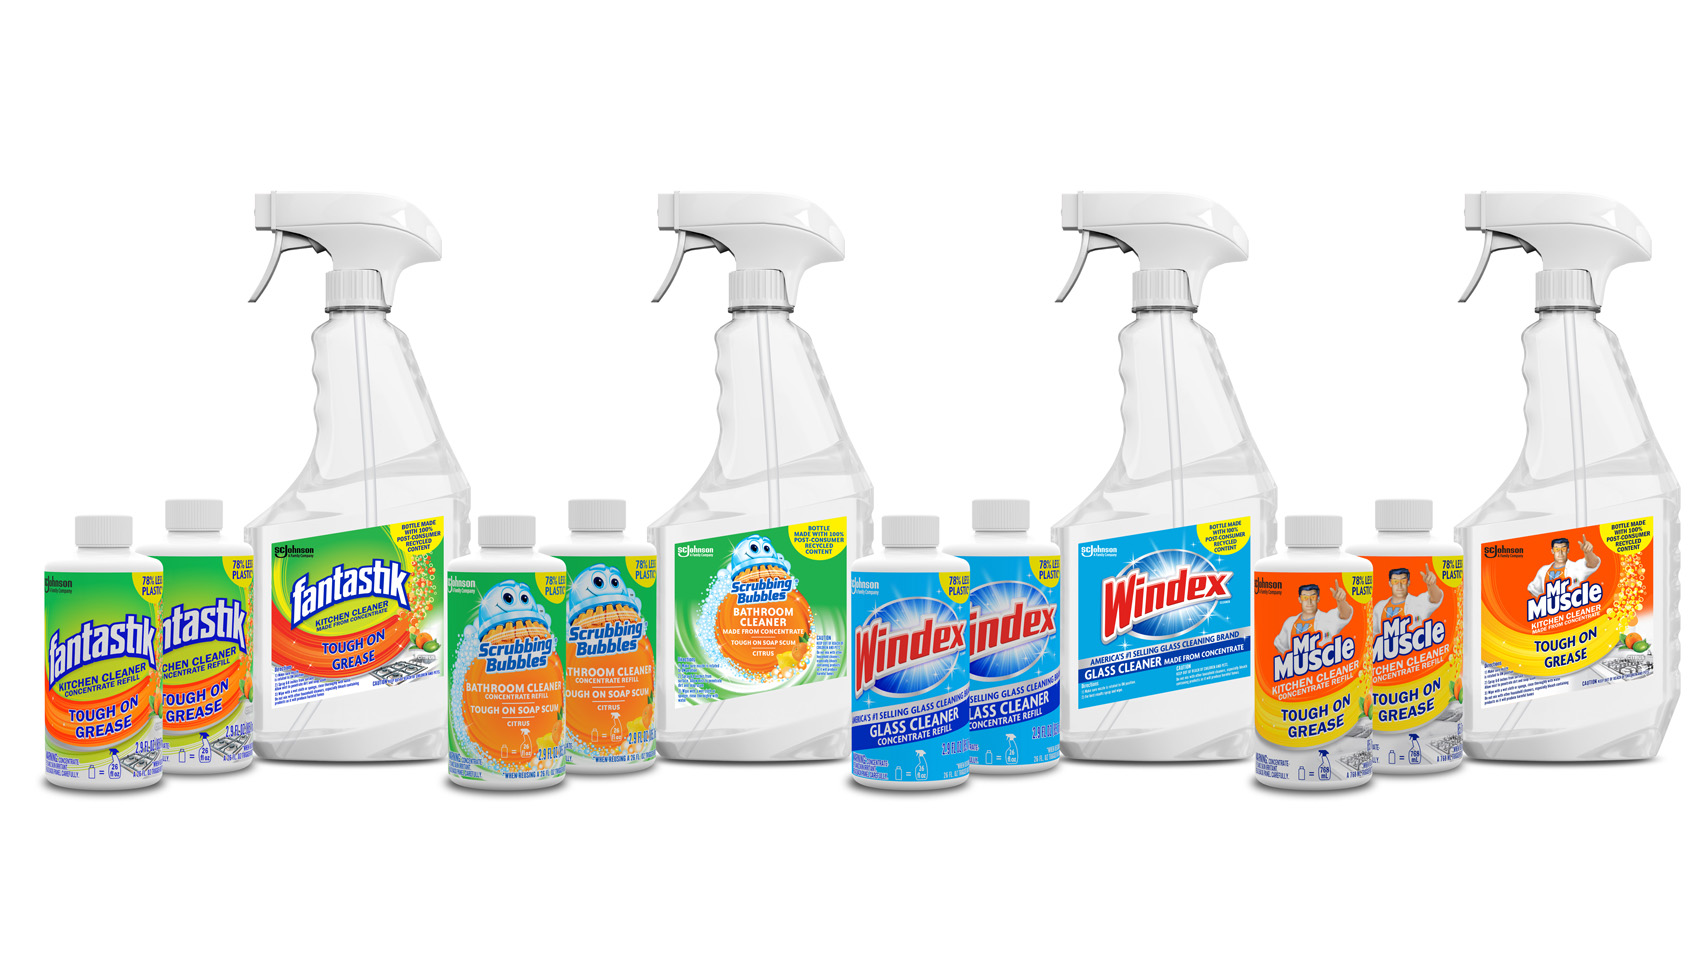 produto de limpeza concentrado da sc johnson para windex, scrubbing bubbles, fantastik e mr muscle